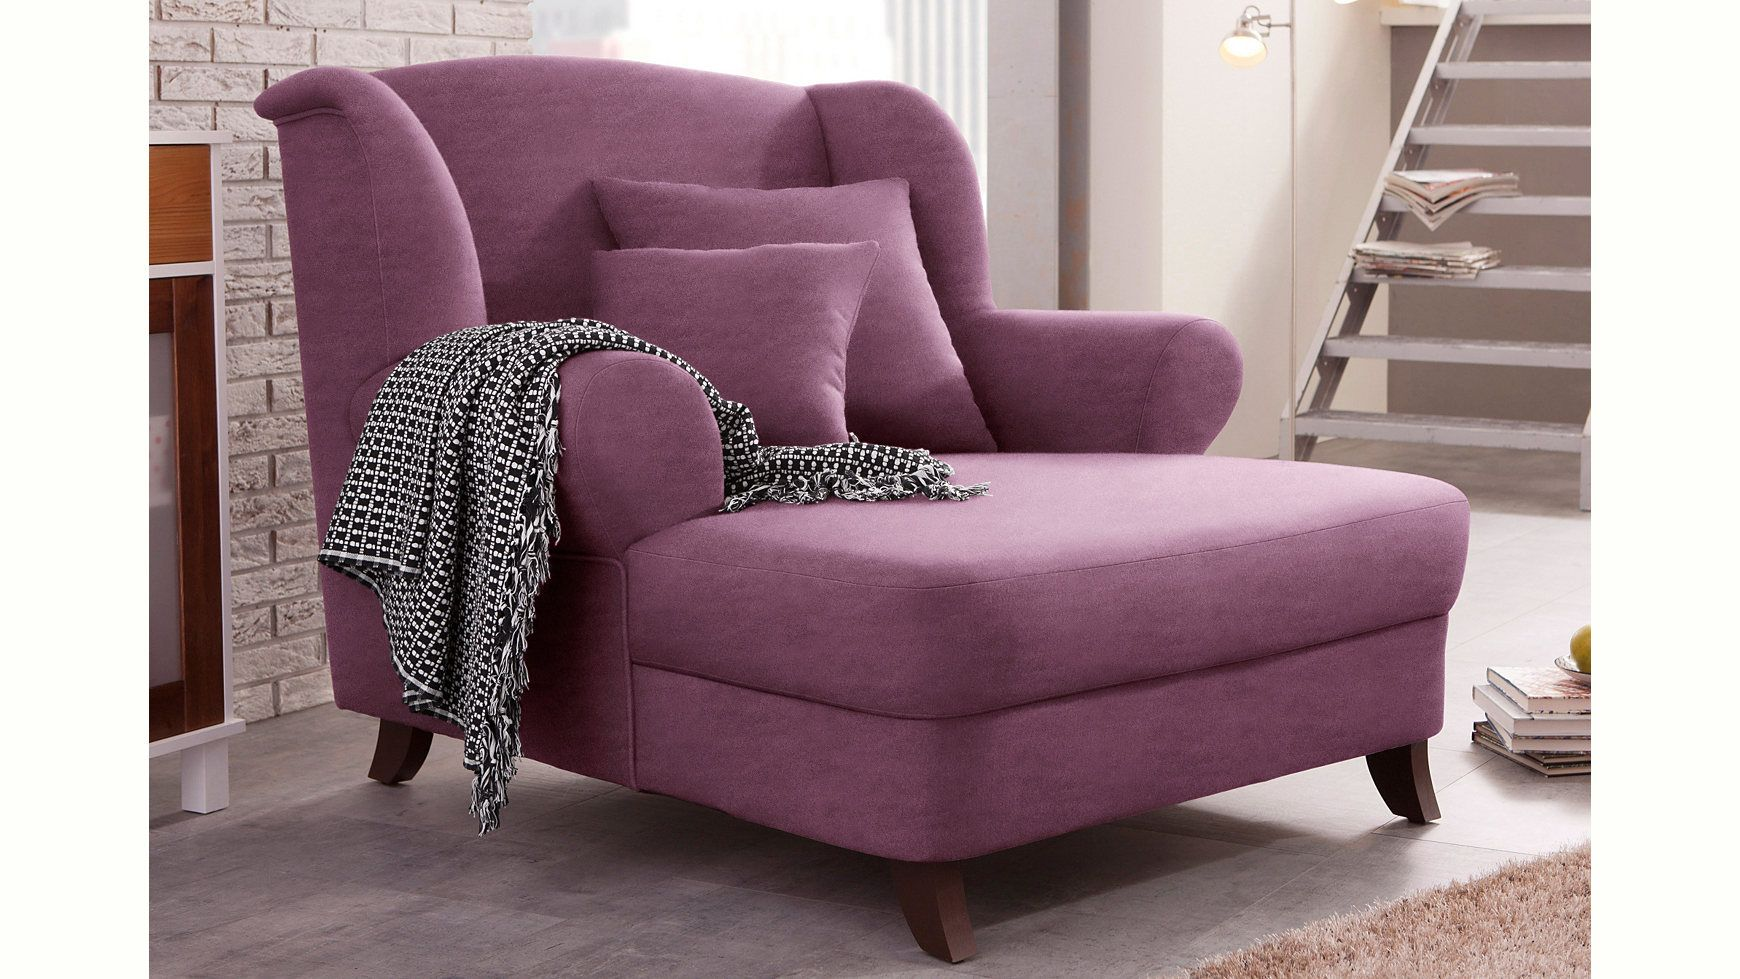 Xxl-sessel Home Affaire Pin Auf Chill Out Areas